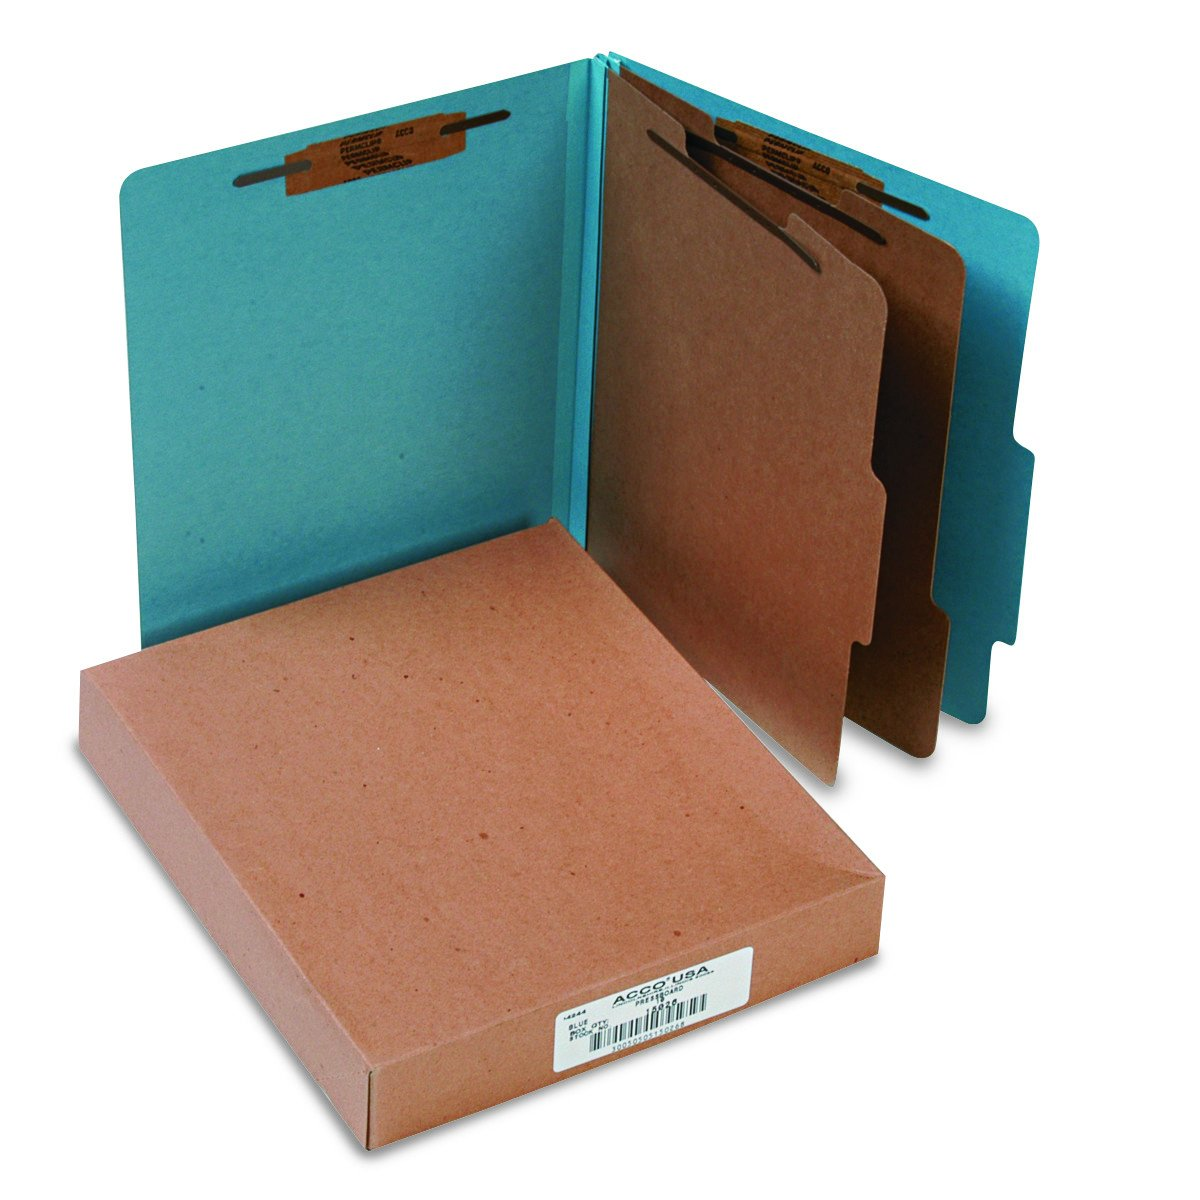 ACCO Classification Folders with Fasteners, Pressboard, 6-Part, Letter Size, Blue, 10 per Box (A7015026) by ACCO